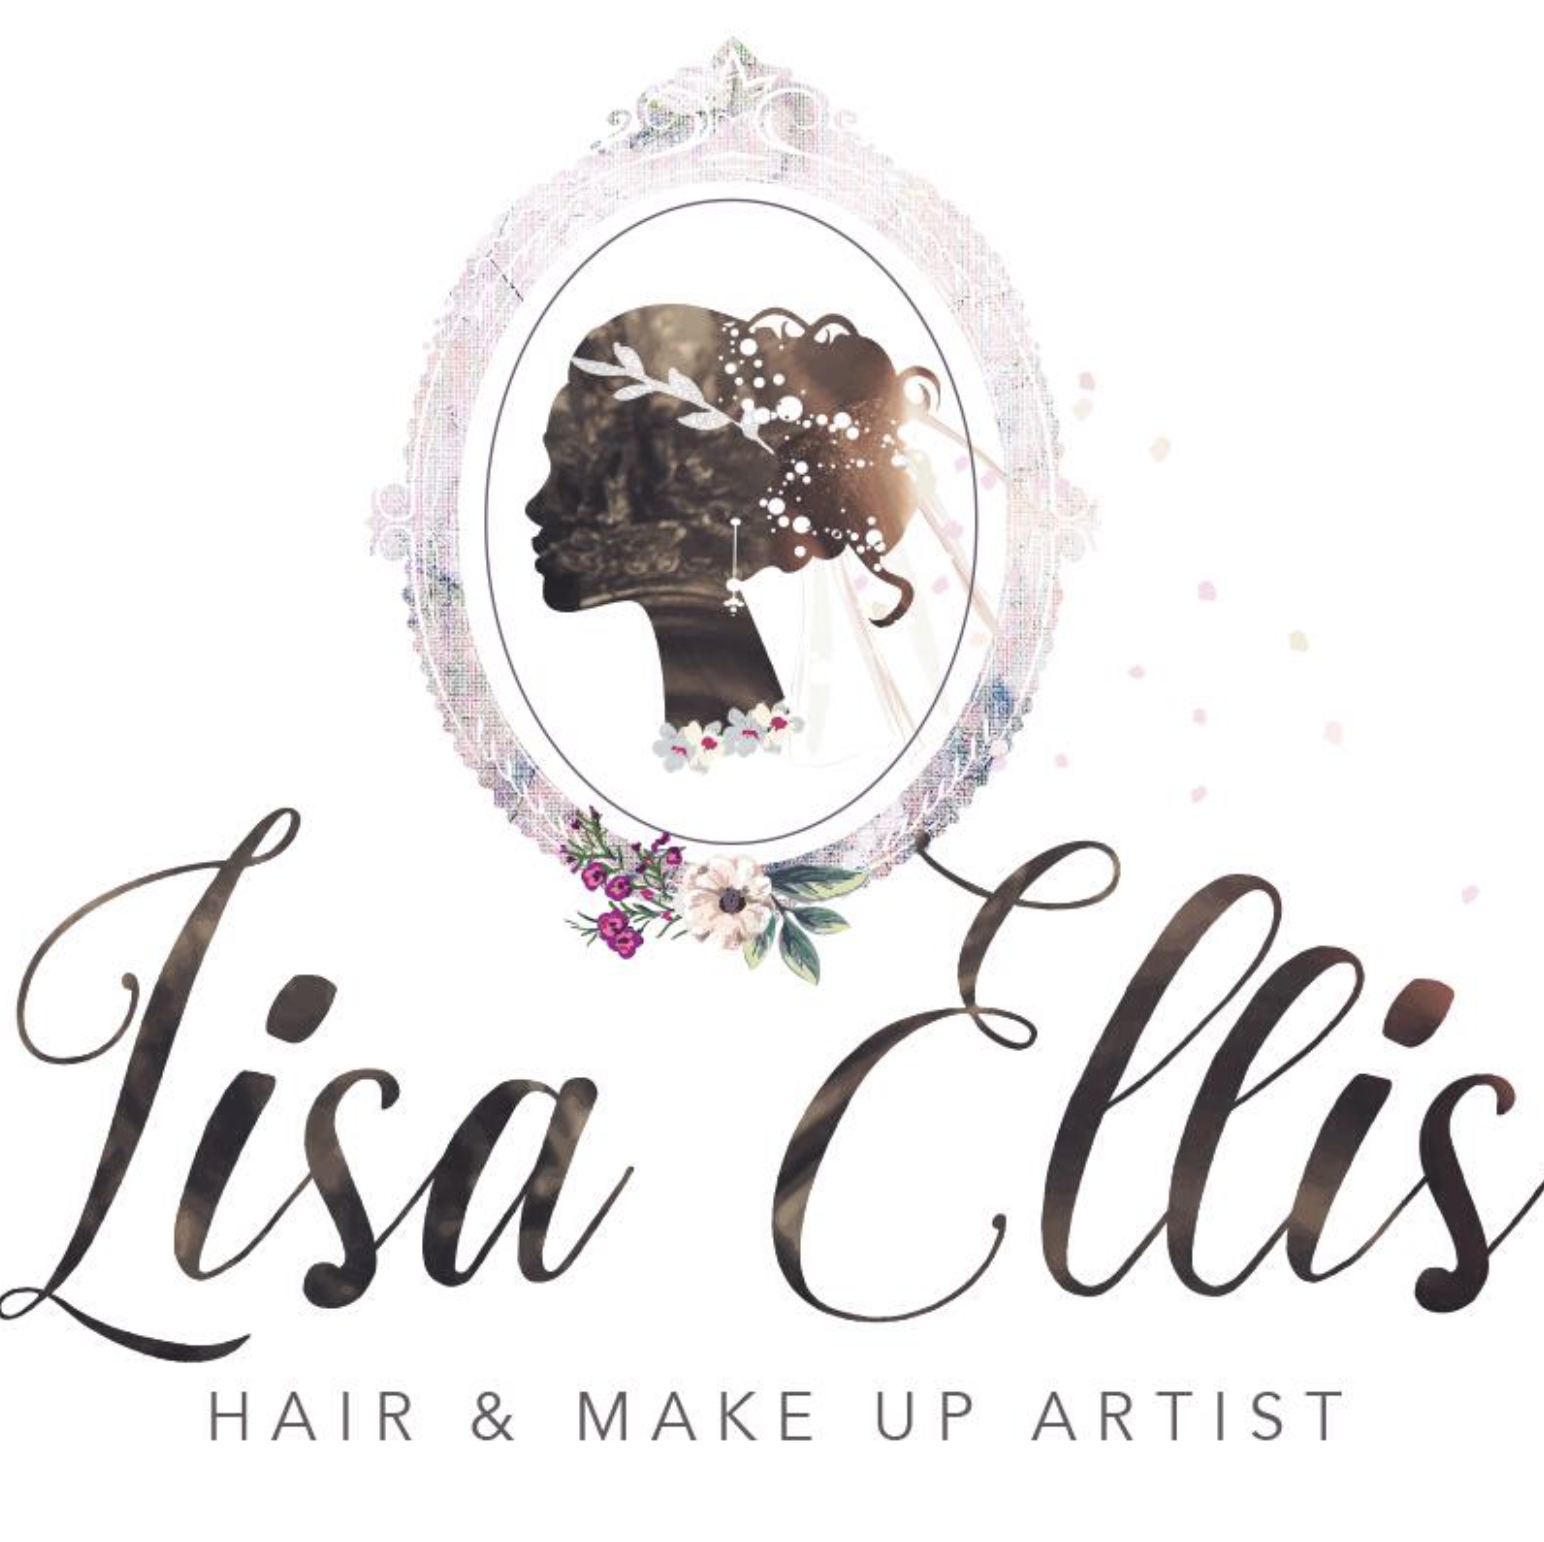 Lisa Ellis Hair & Make Up